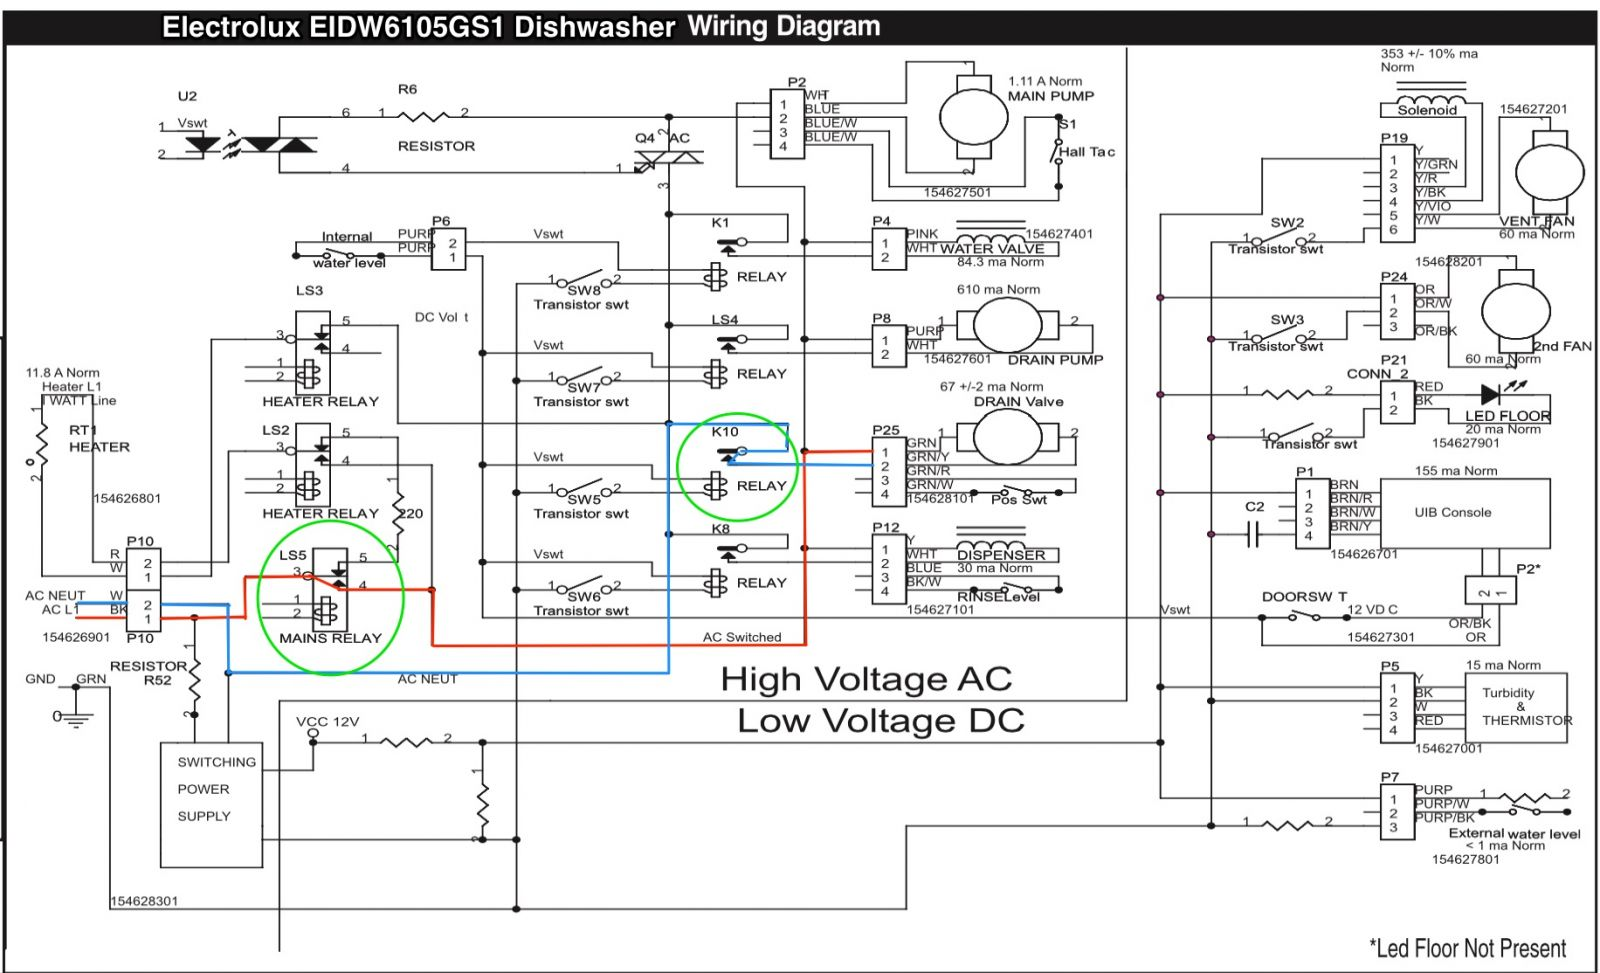 electrolux eidw6105gs1 dishwasher wiring diagram the appliantology Dishwasher Loading Diagram electrolux eidw6105gs1 dishwasher wiring diagram image tools